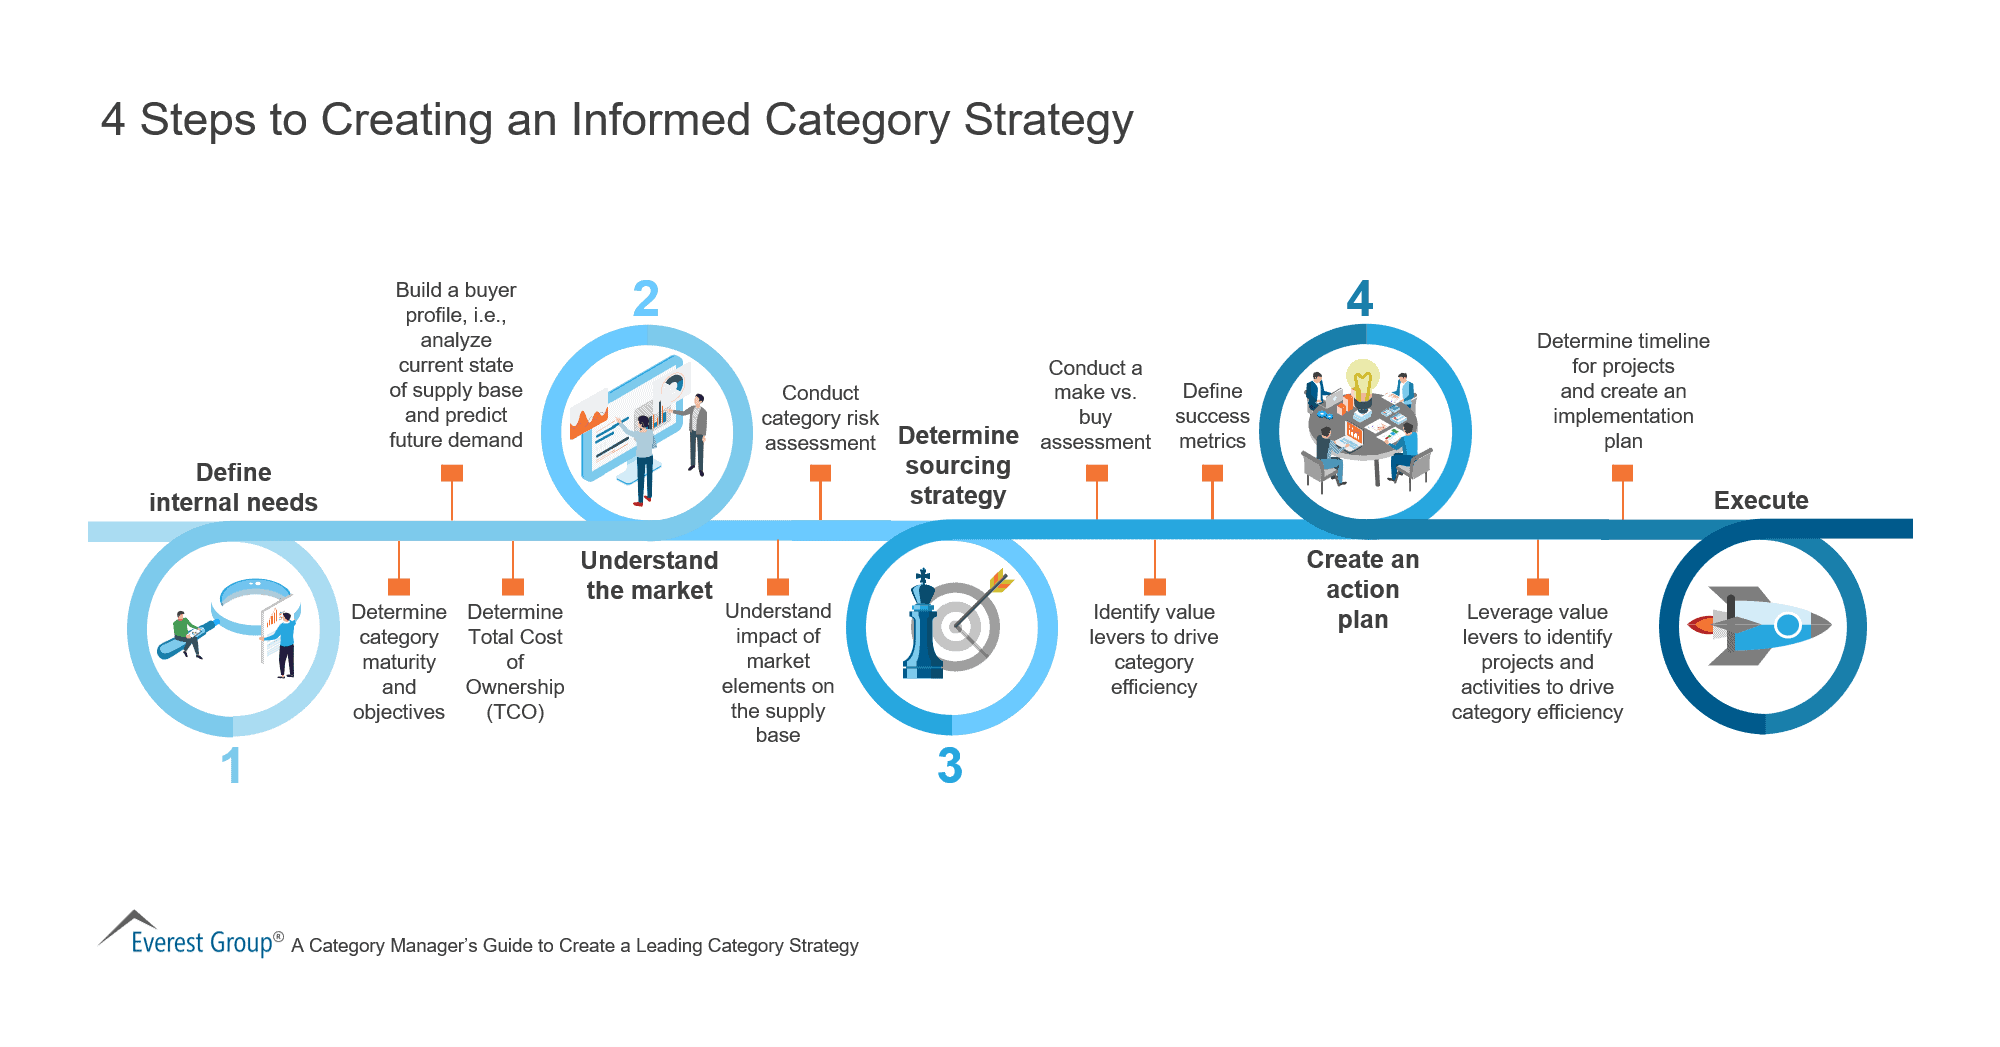 4 Steps to Creating an Informed Category Strategy